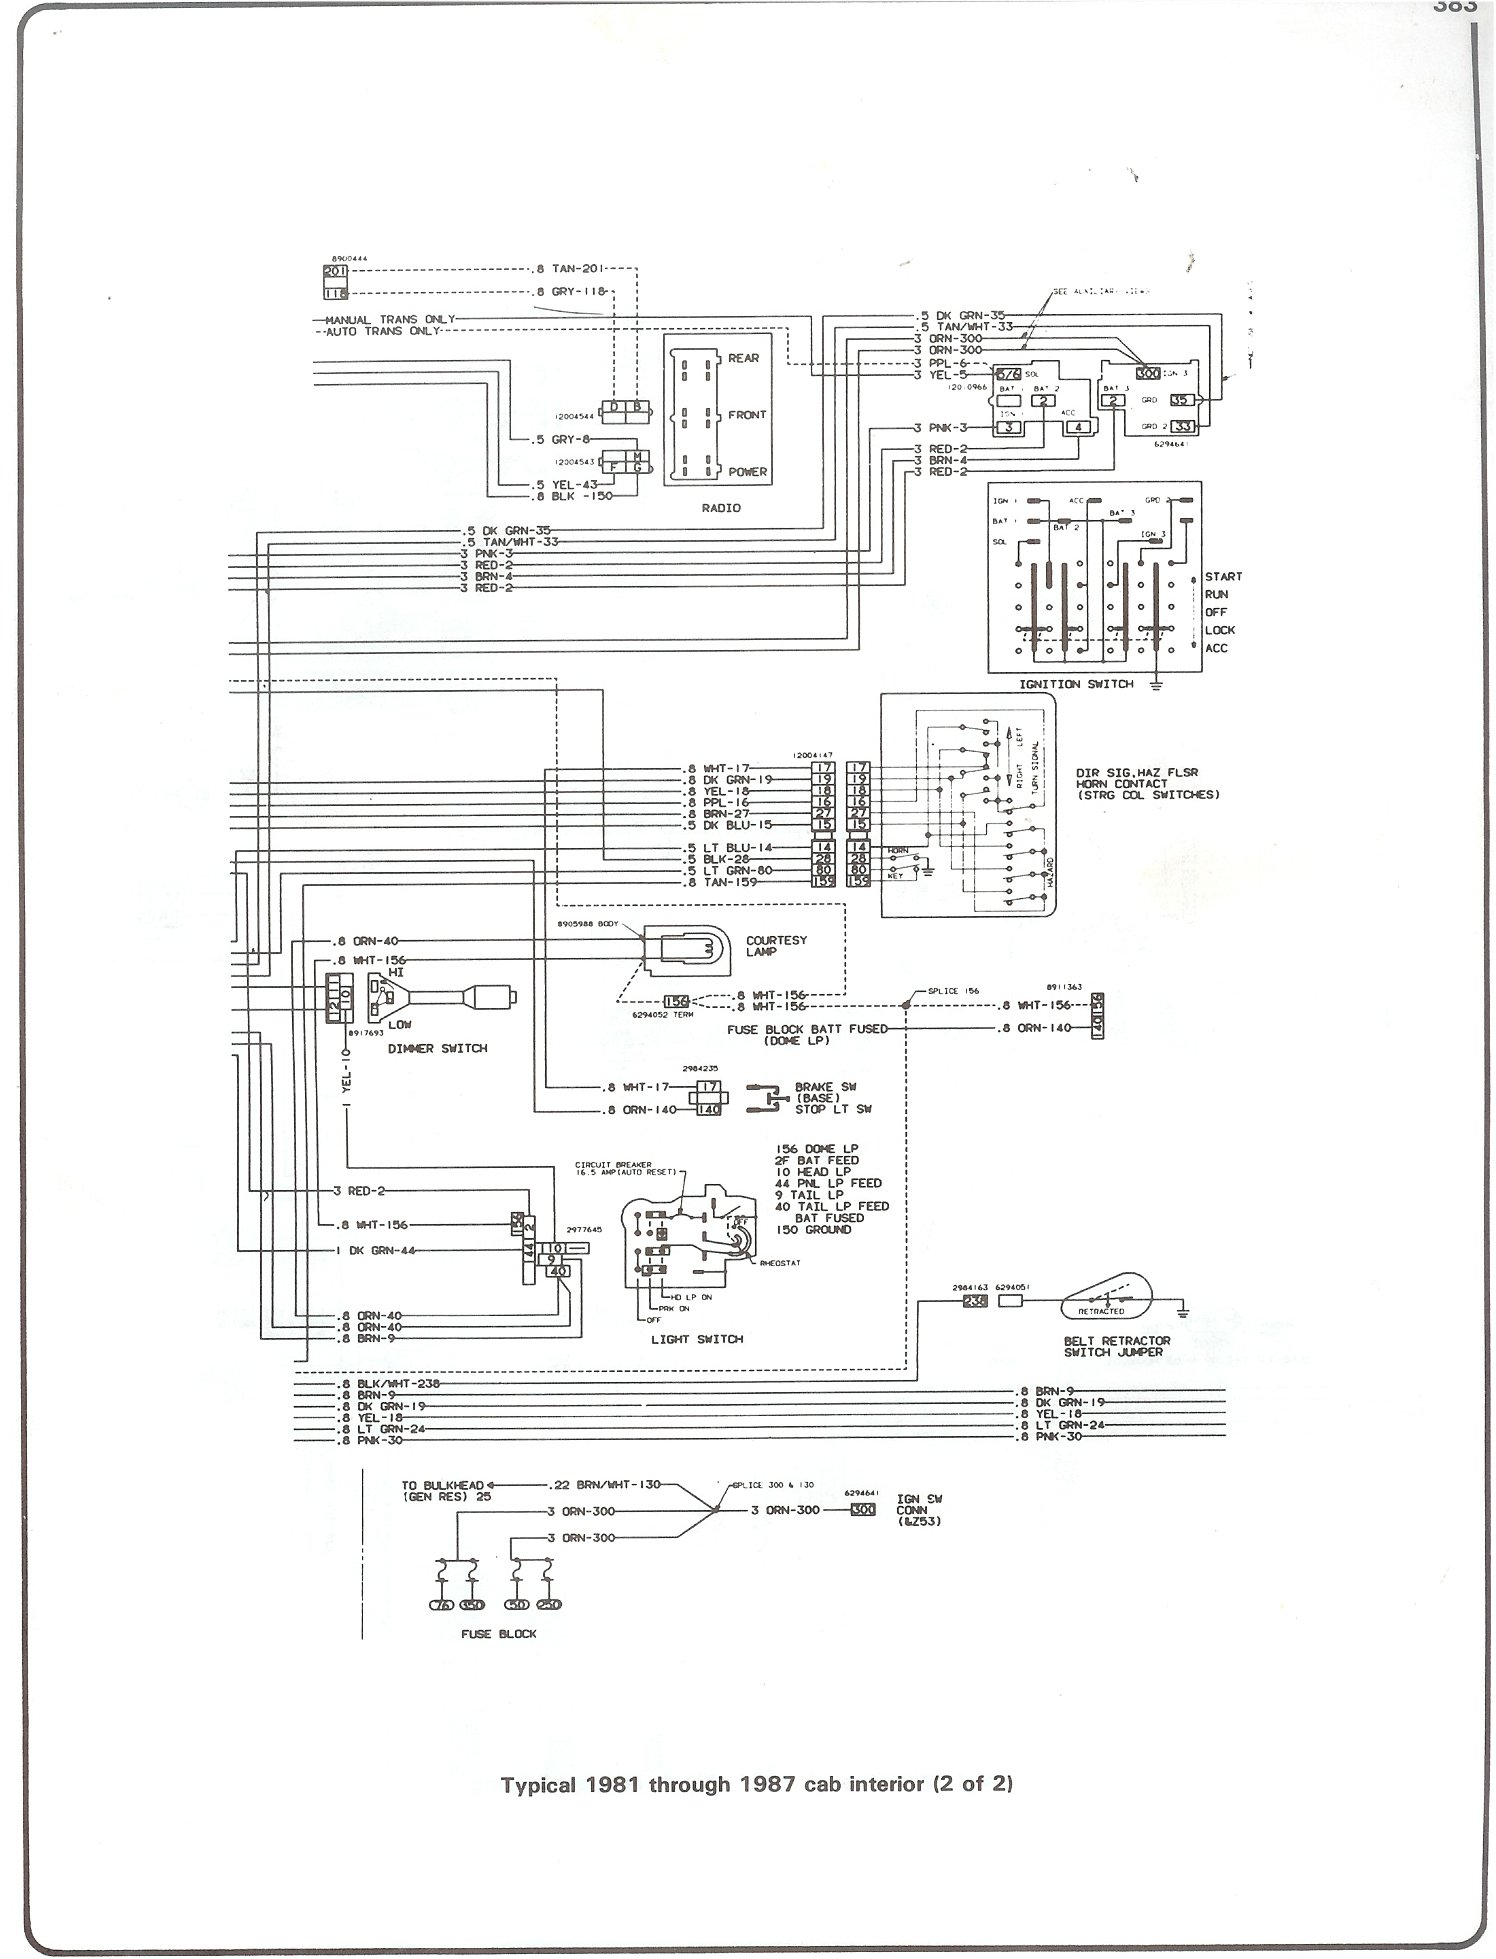 Astonishing Gmc C5500 Wiring Diagram Basic Electronics Wiring Diagram Wiring Digital Resources Antuskbiperorg